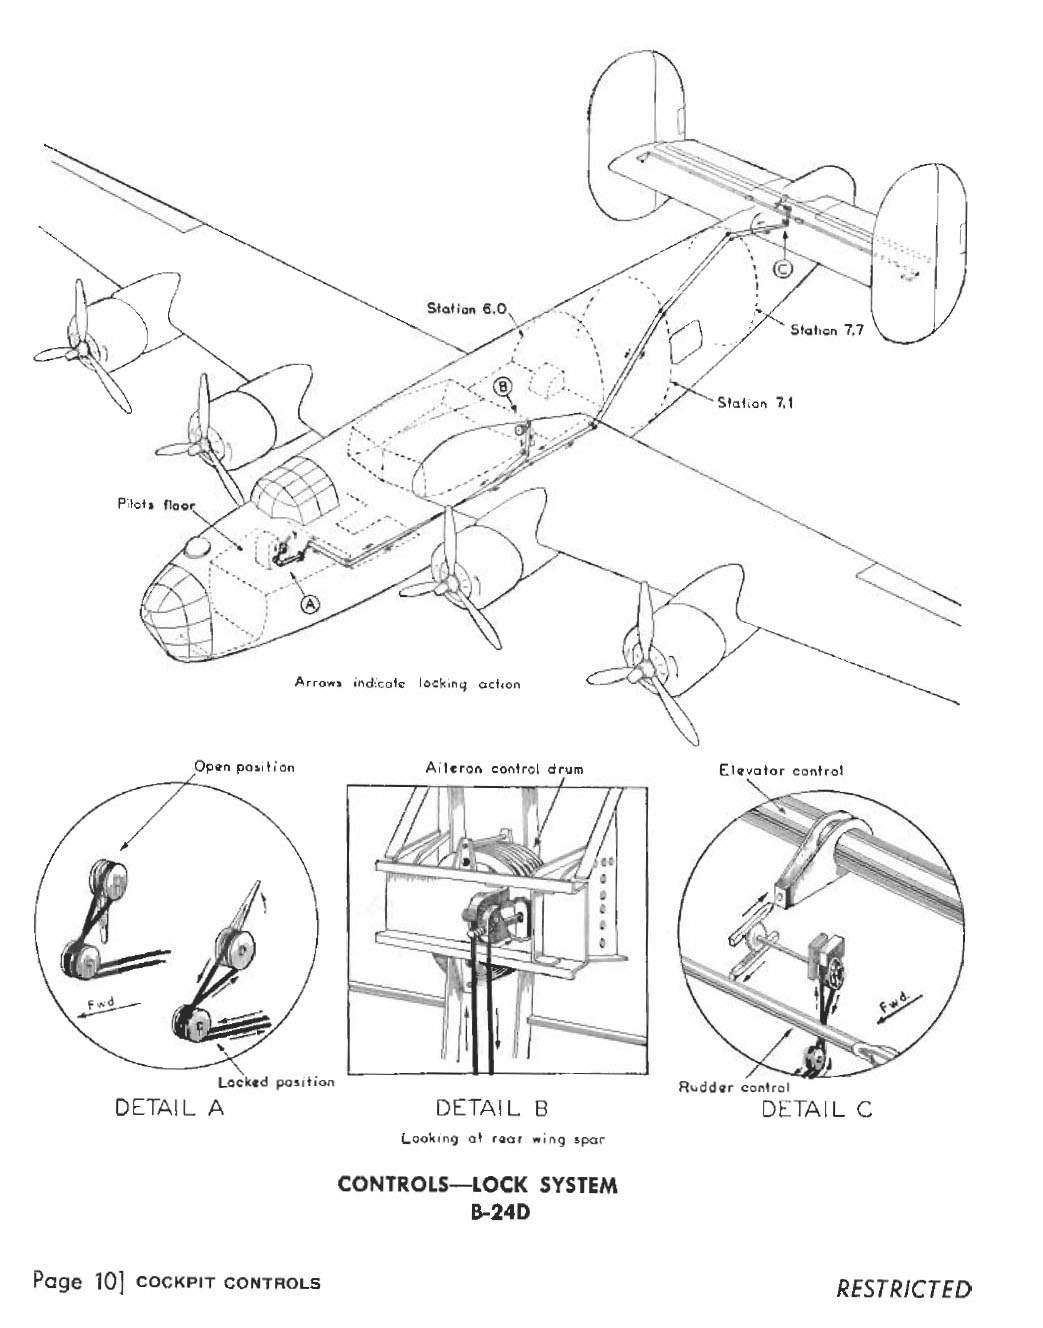 B-24D. Flight Manual. Cockpit Controls.